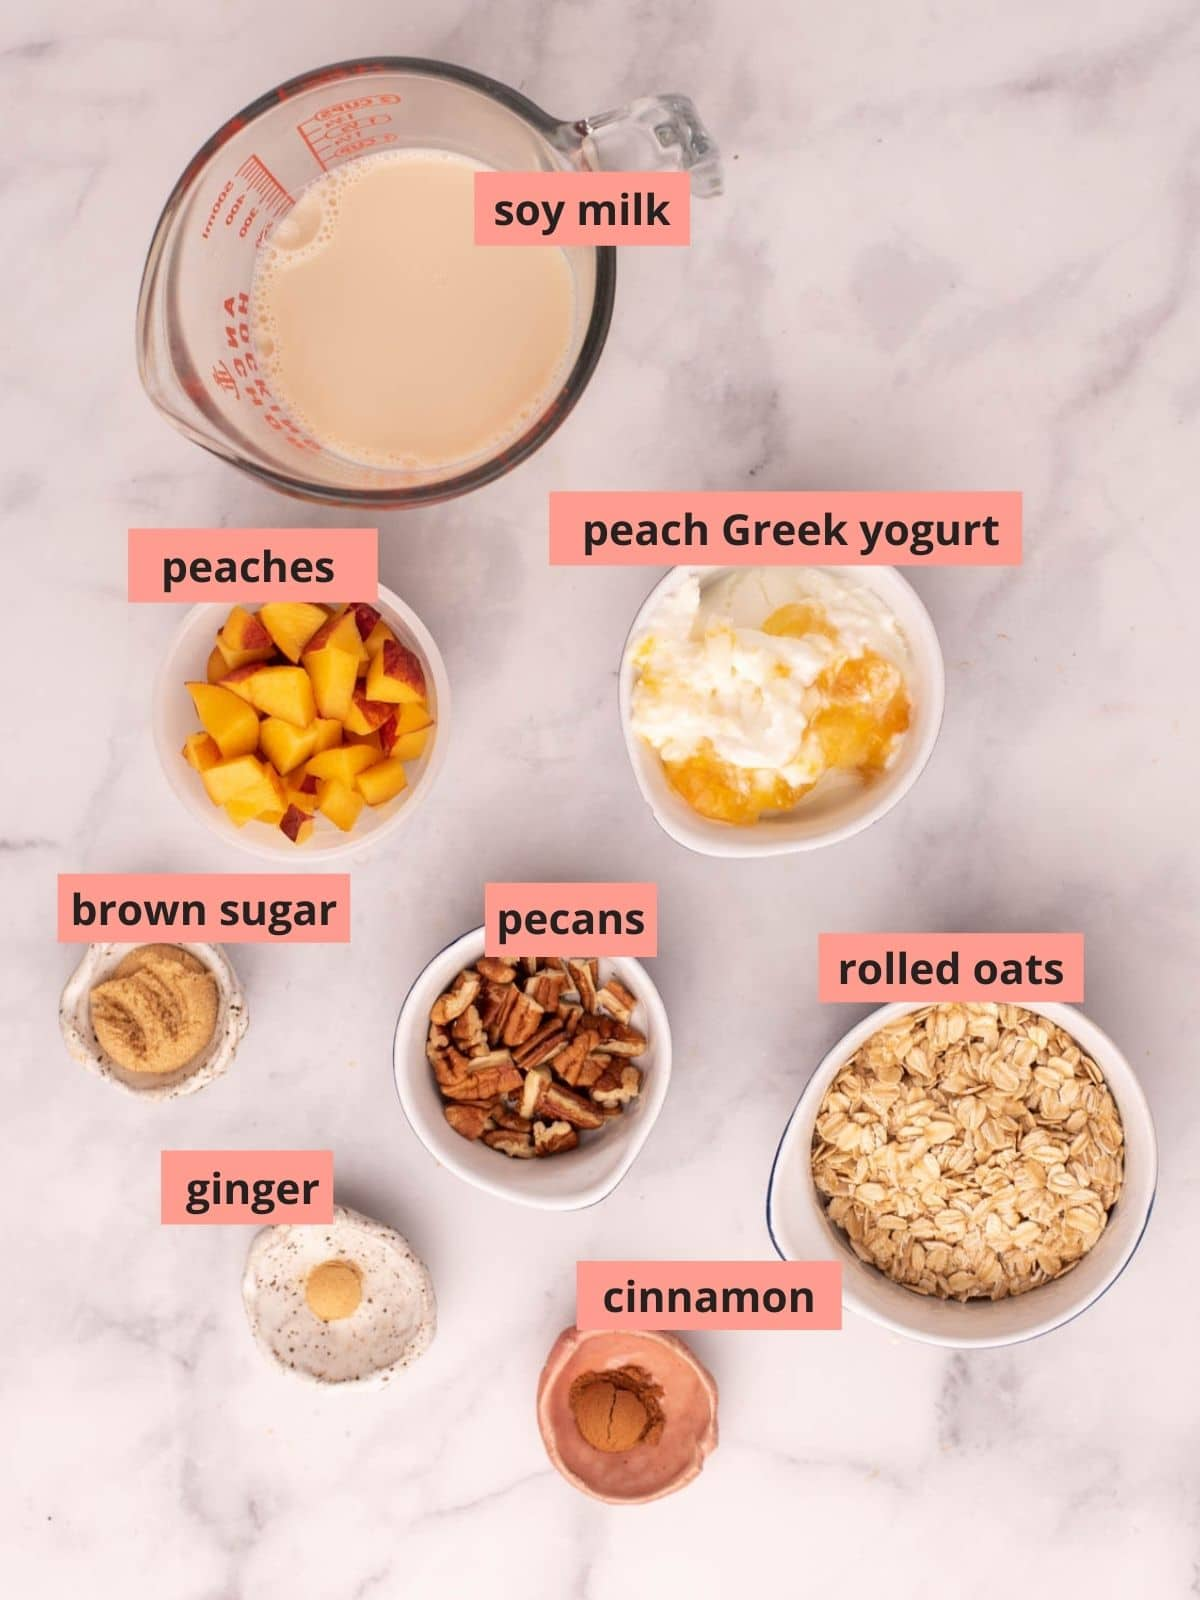 Labeled ingredients used to make peach overnight oats